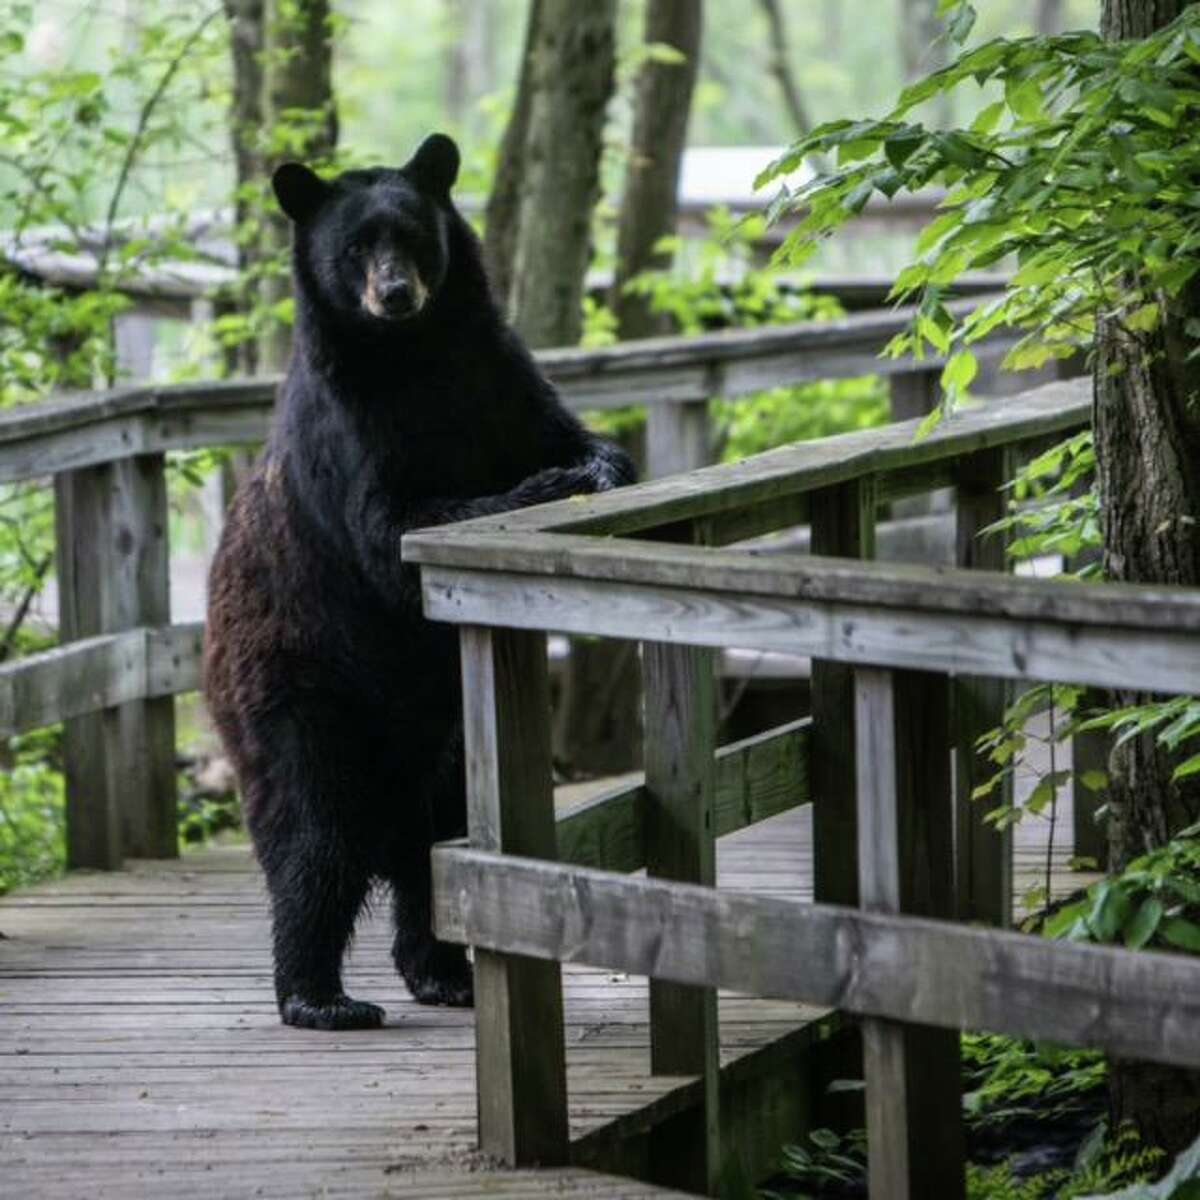 Photographer Christ Volpe photographed this bear in Edgewood Park near his home in New Haven, Conn. May 27, 2020.